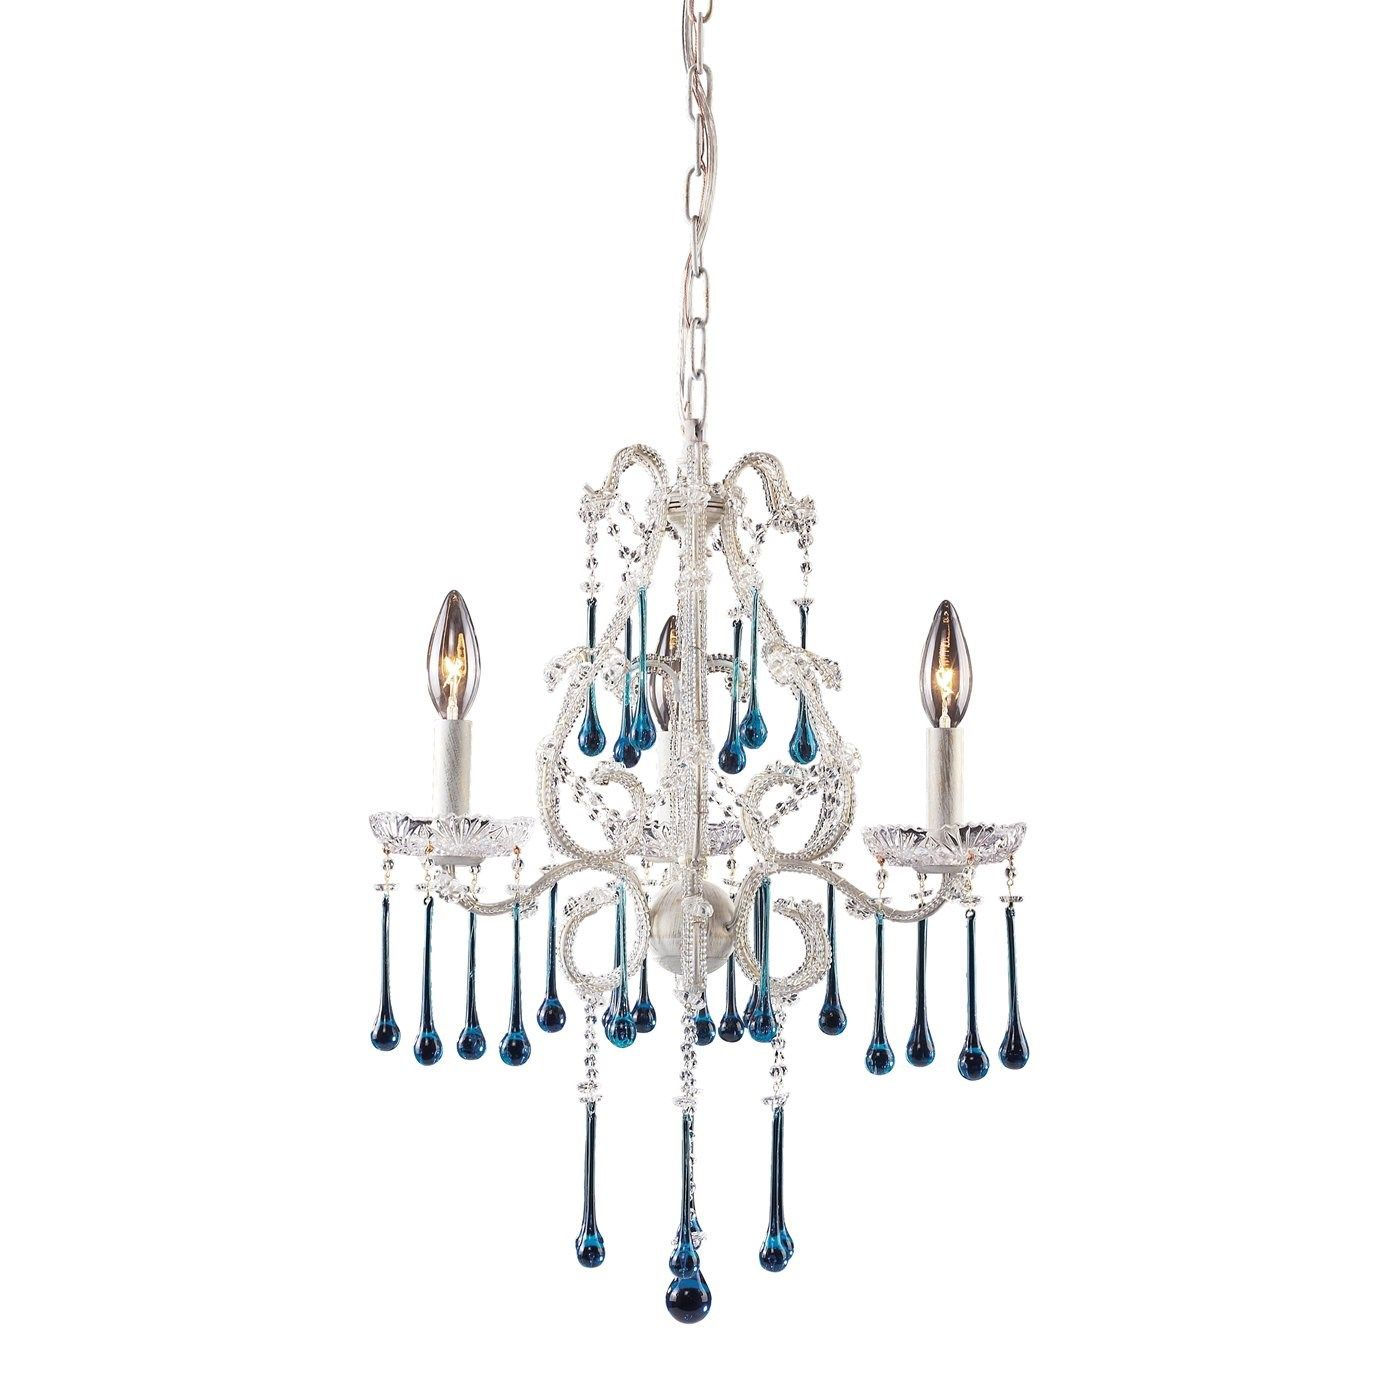 Elk 4001 3AQ Opulence 3 Light Chandelier in Antique White with